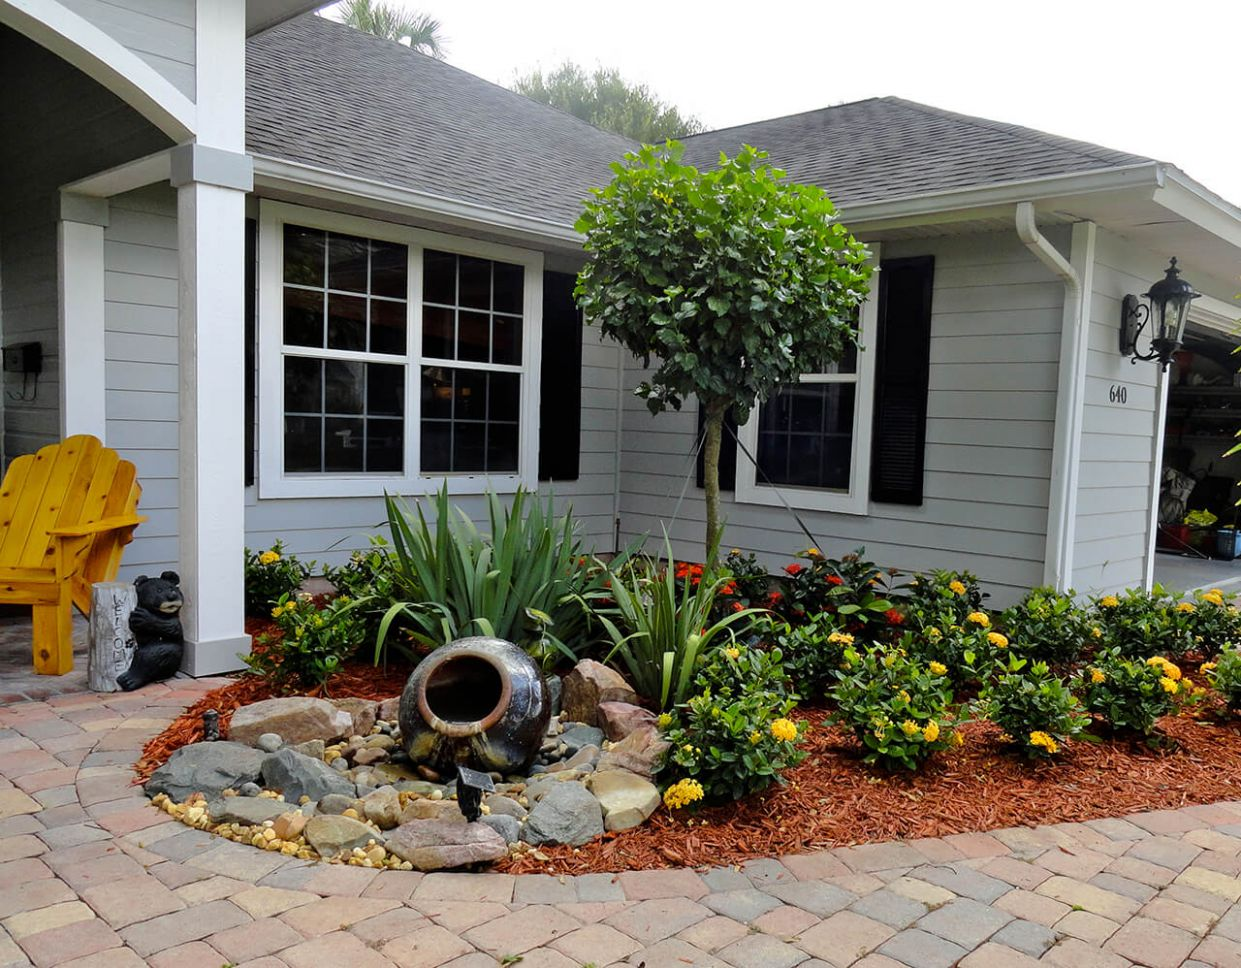 11 Best Front Yard Landscaping Ideas and Garden Designs for 11 - garden ideas around the house